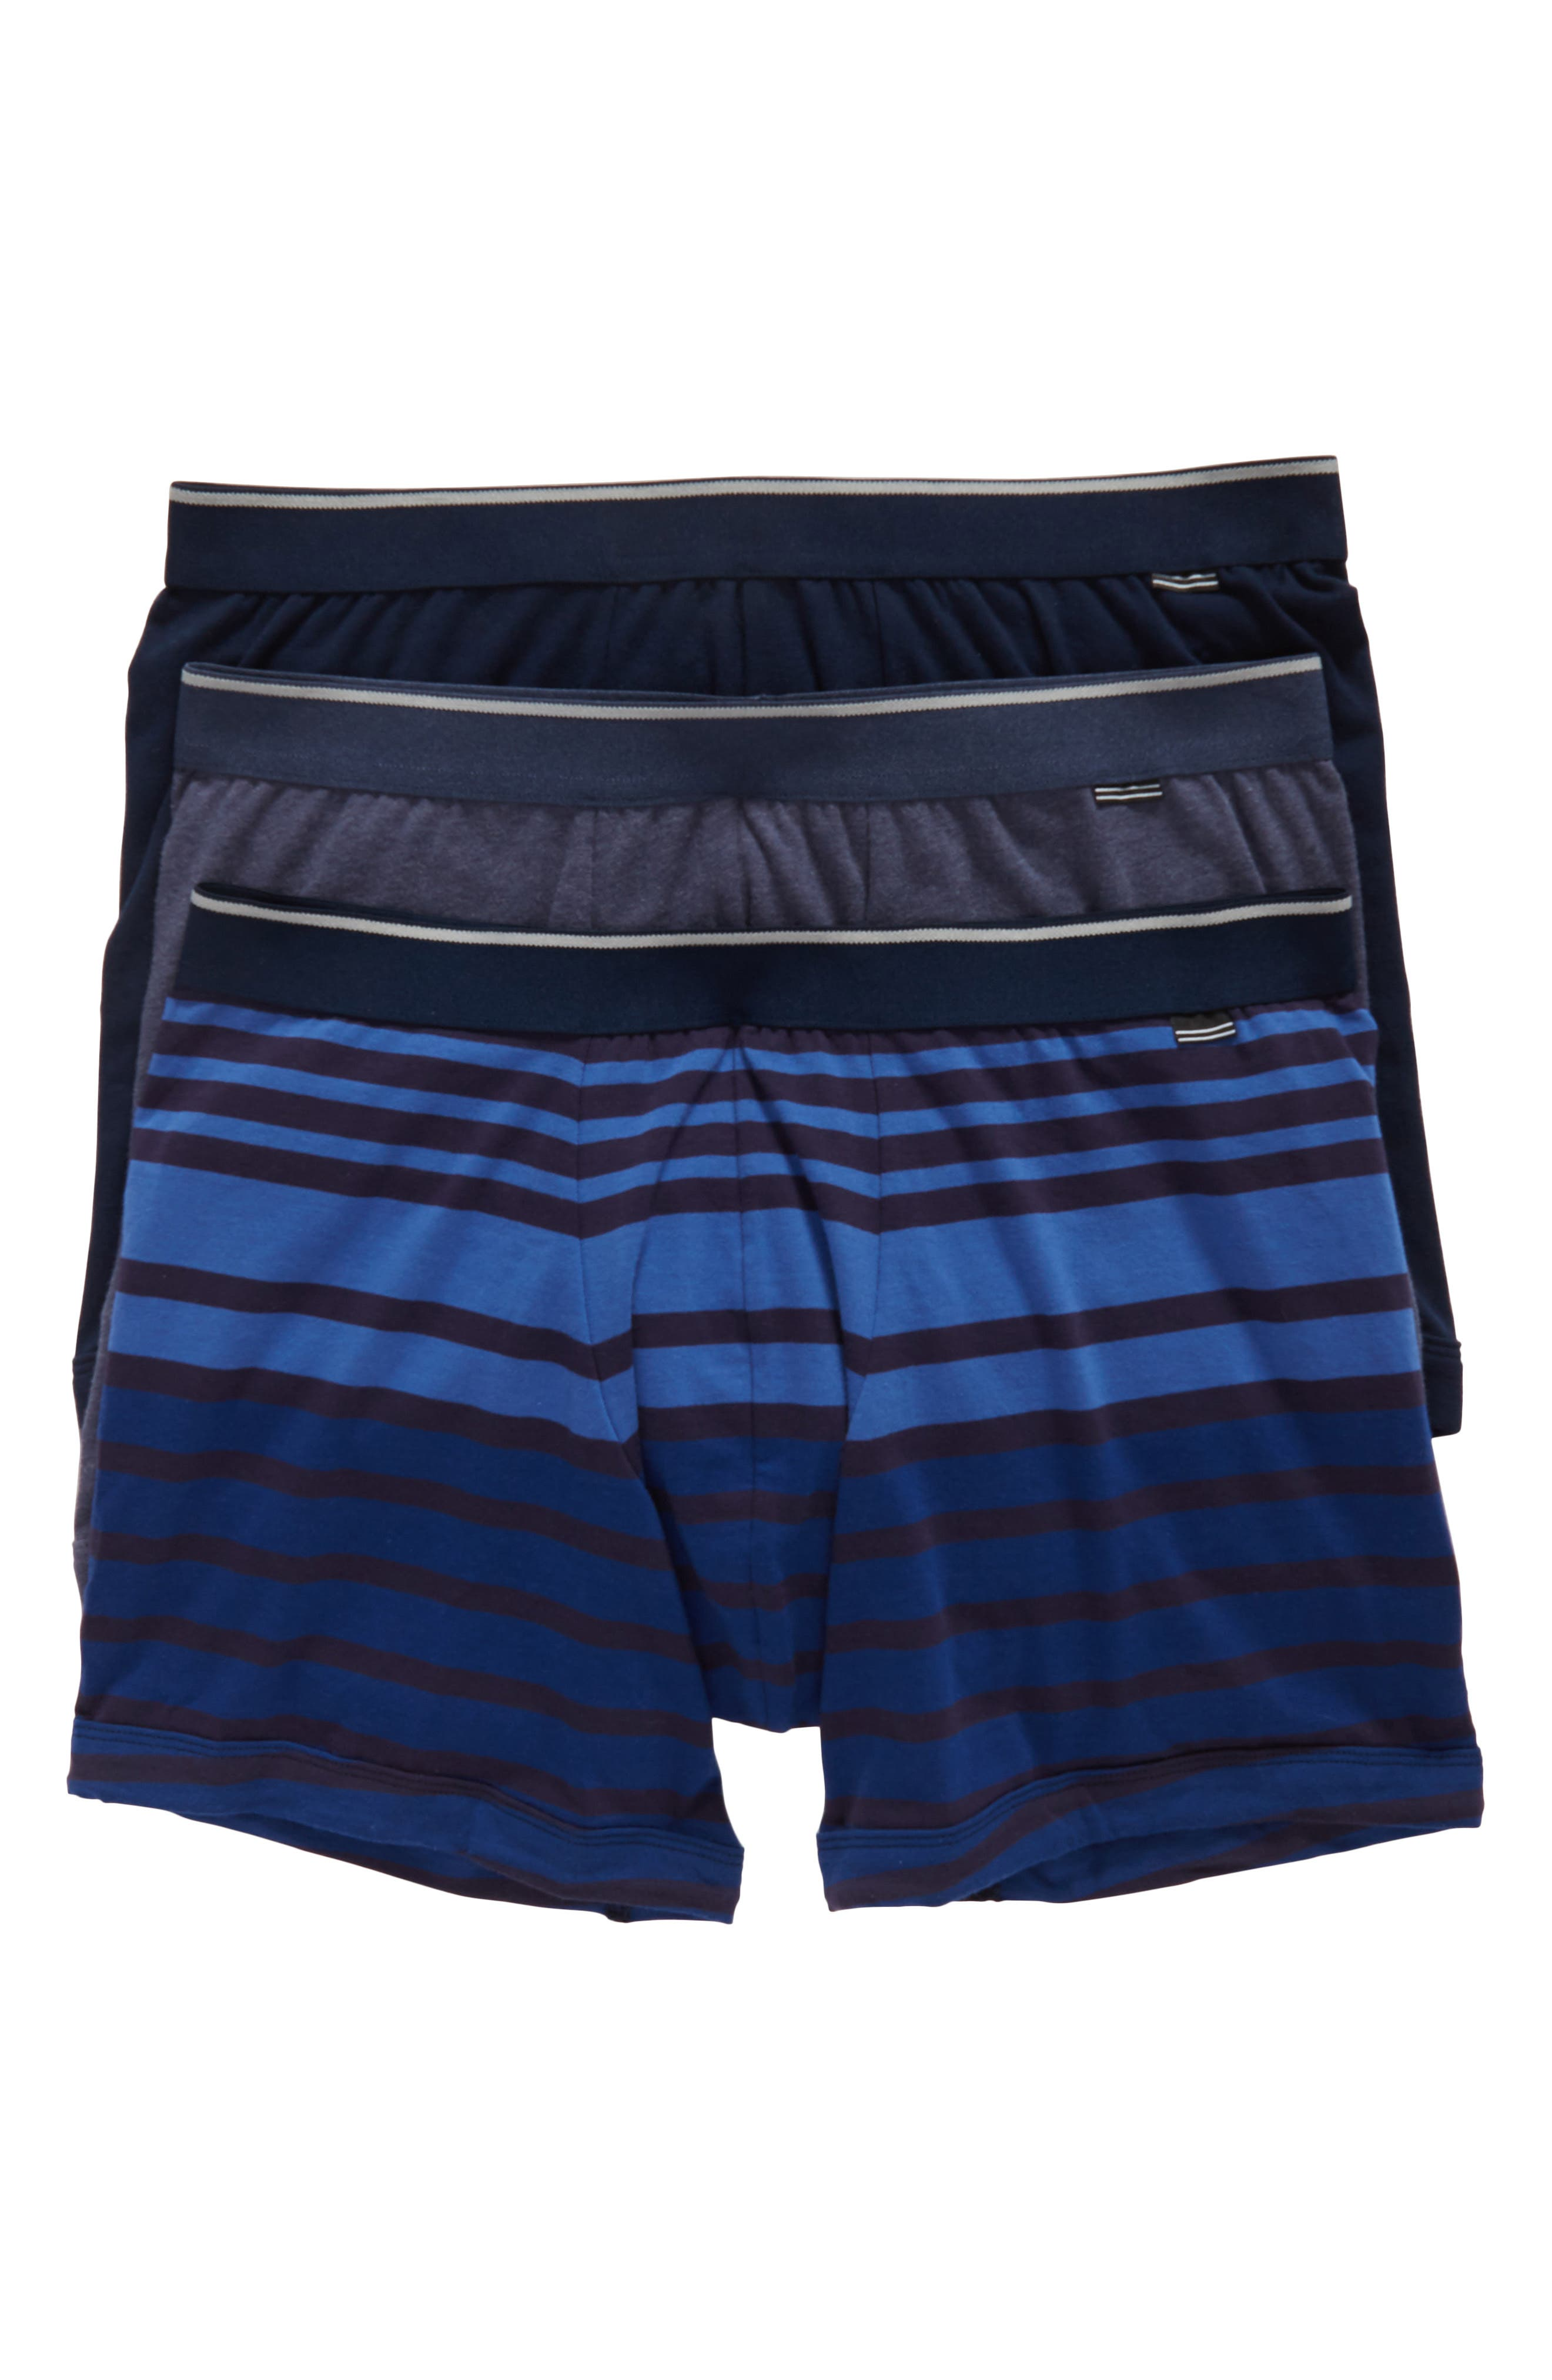 Nordstrom Men's Shop 3-Pack Boxer Briefs